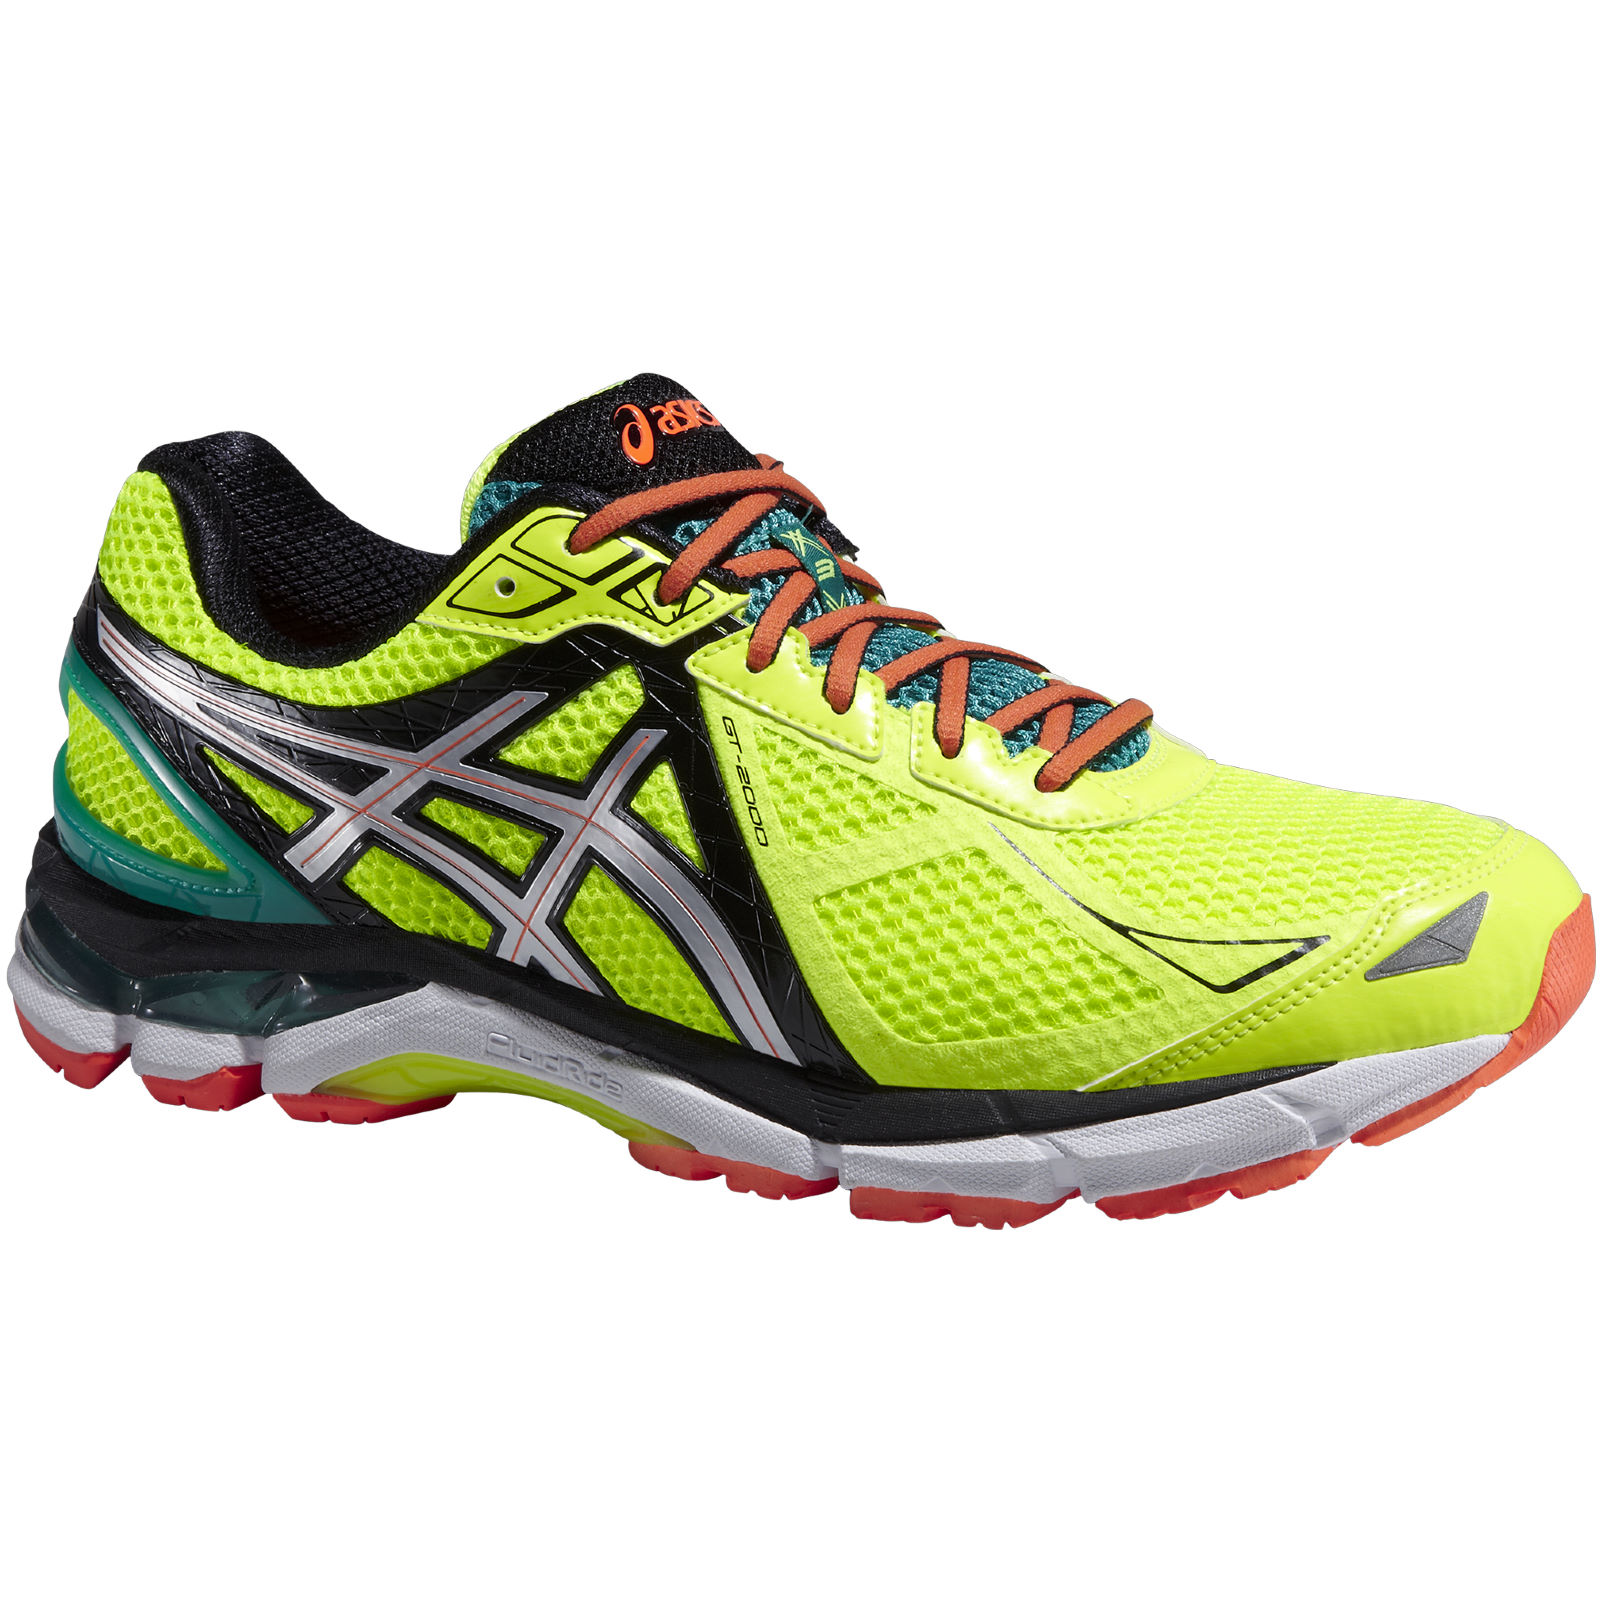 Asics Stability Running Shoes Reviews